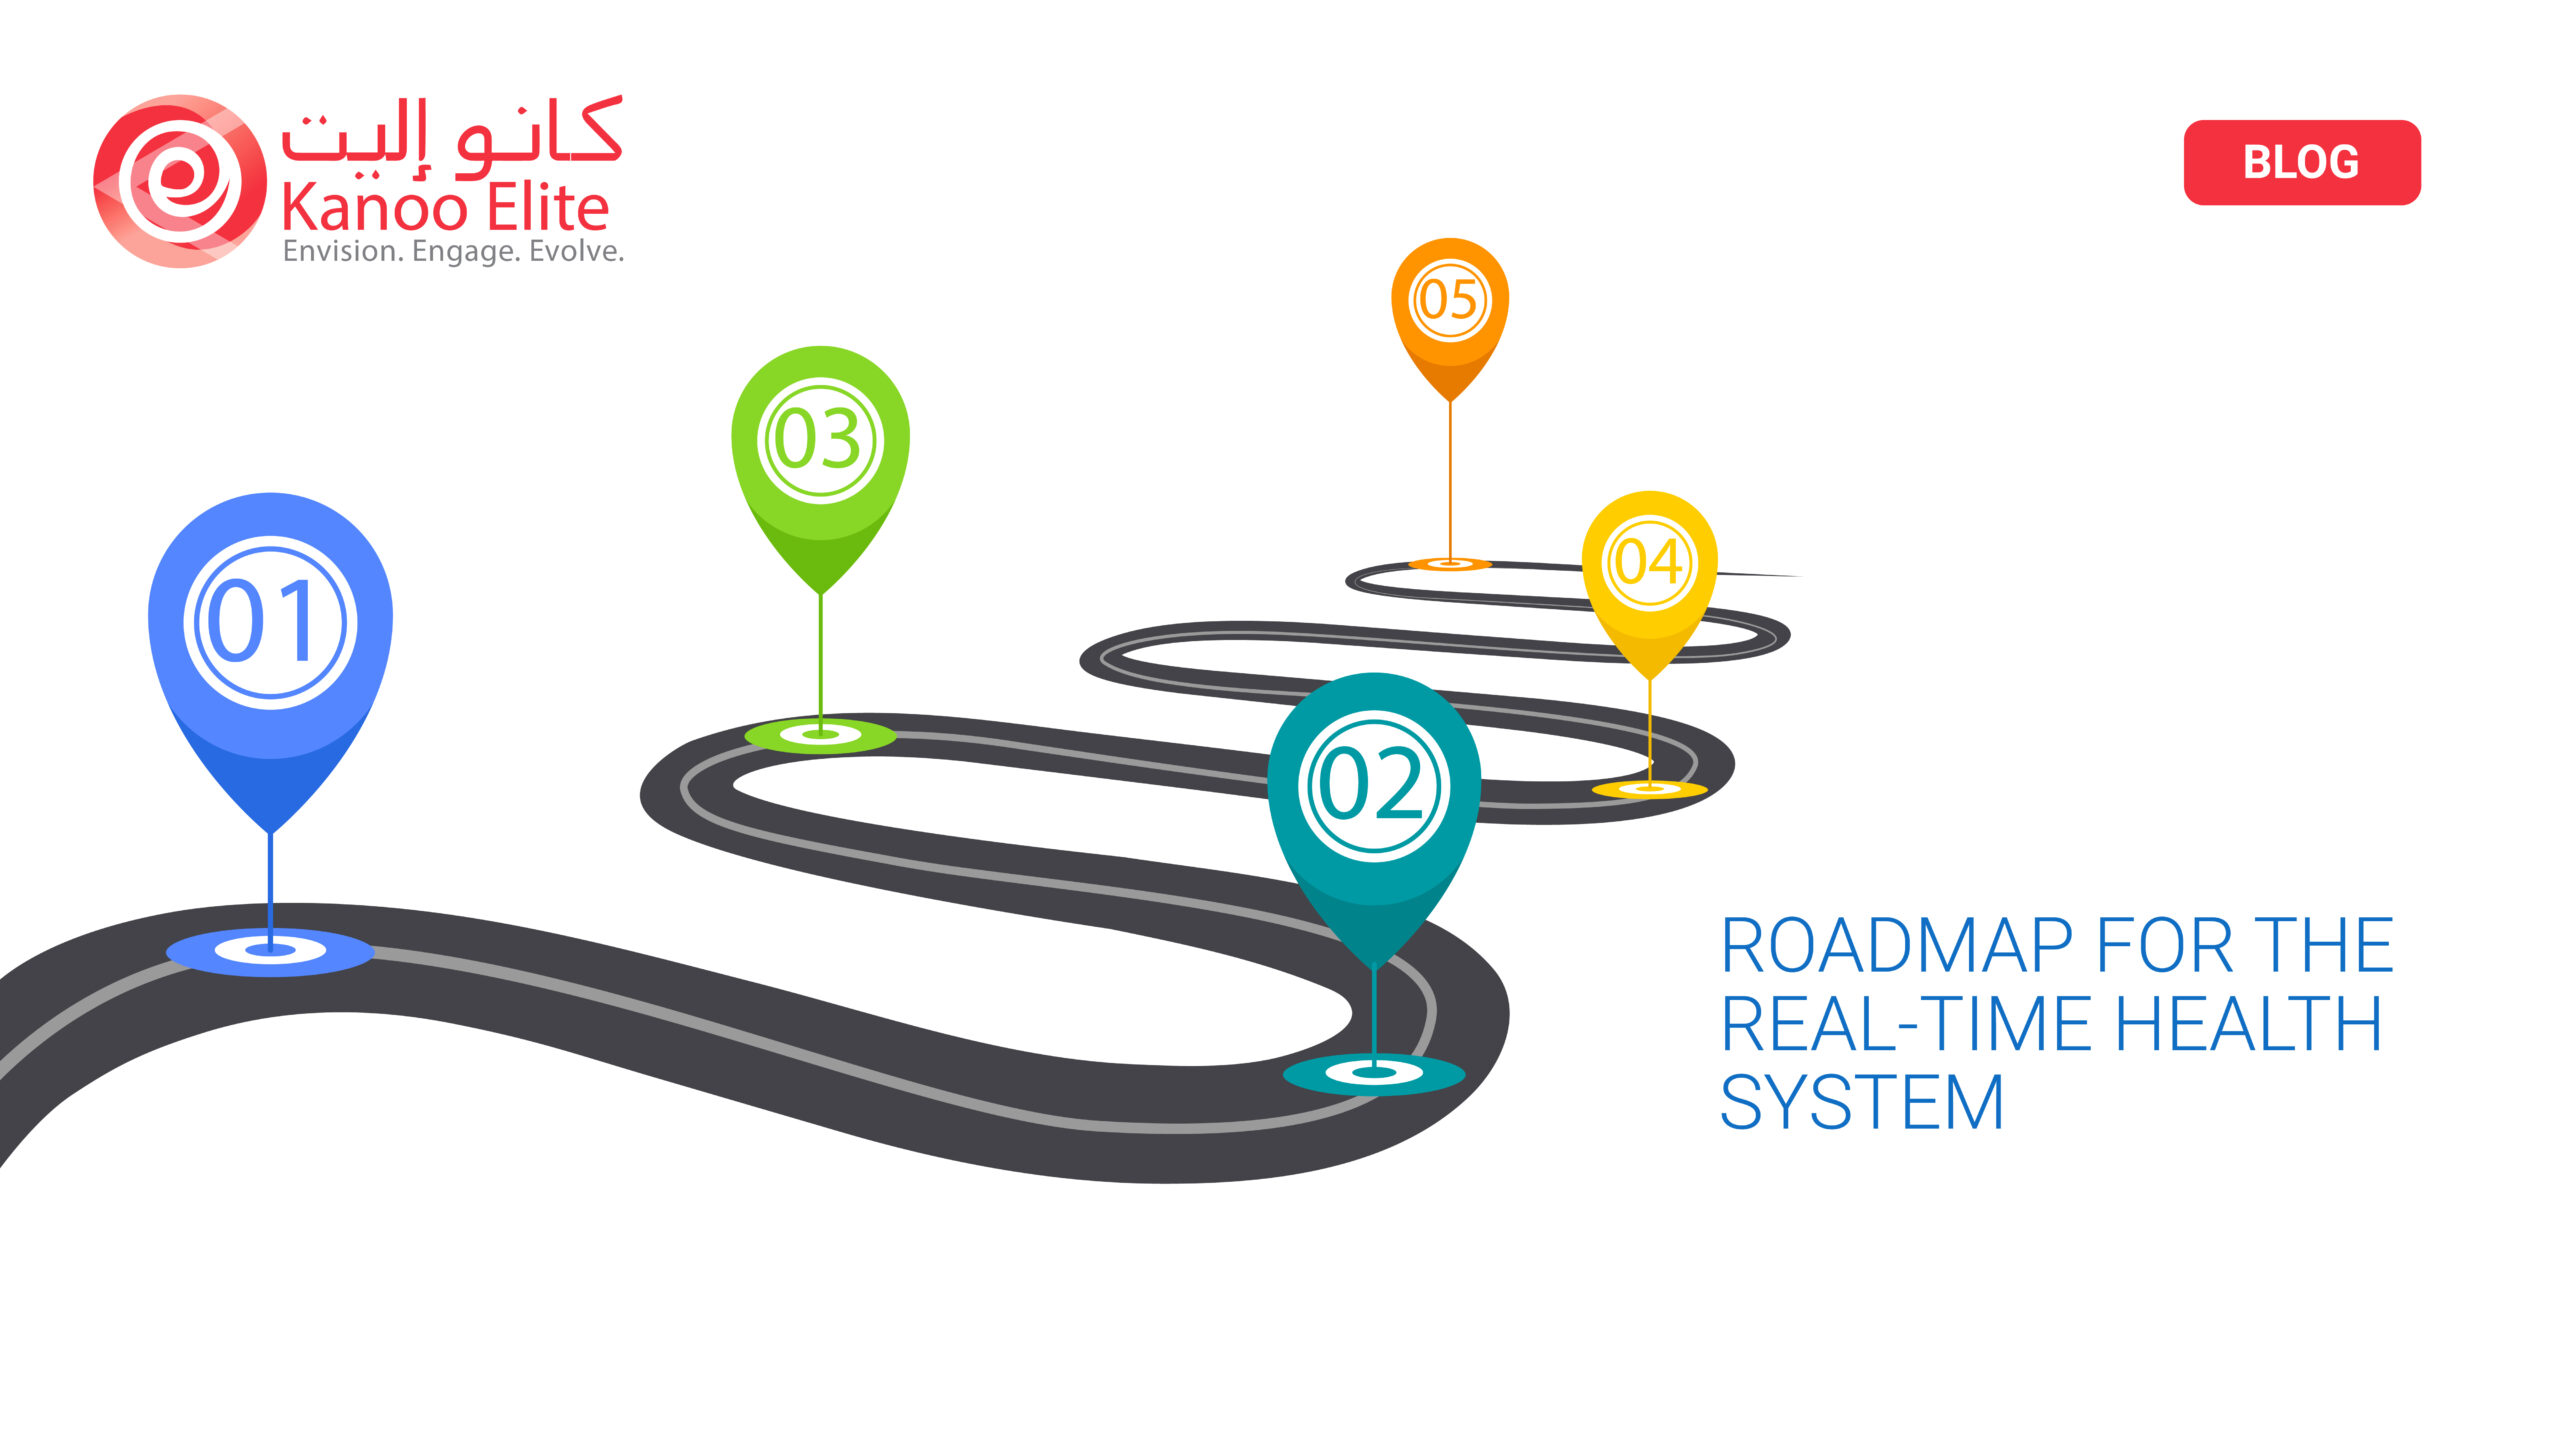 Roadmap for the Real-Time Health System